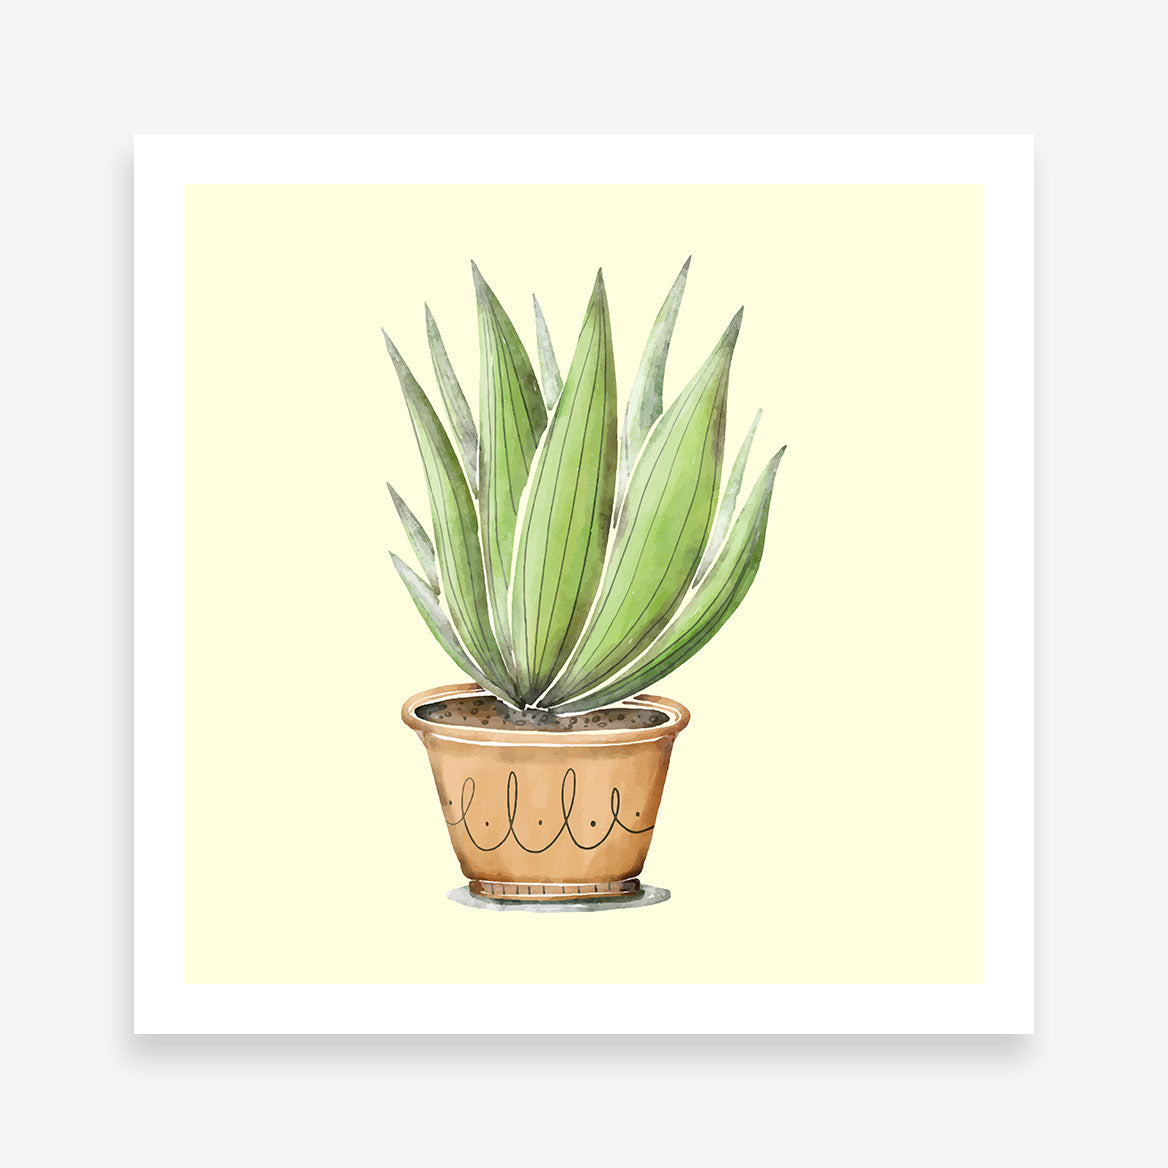 Poster print with green potted plant on light yellow background